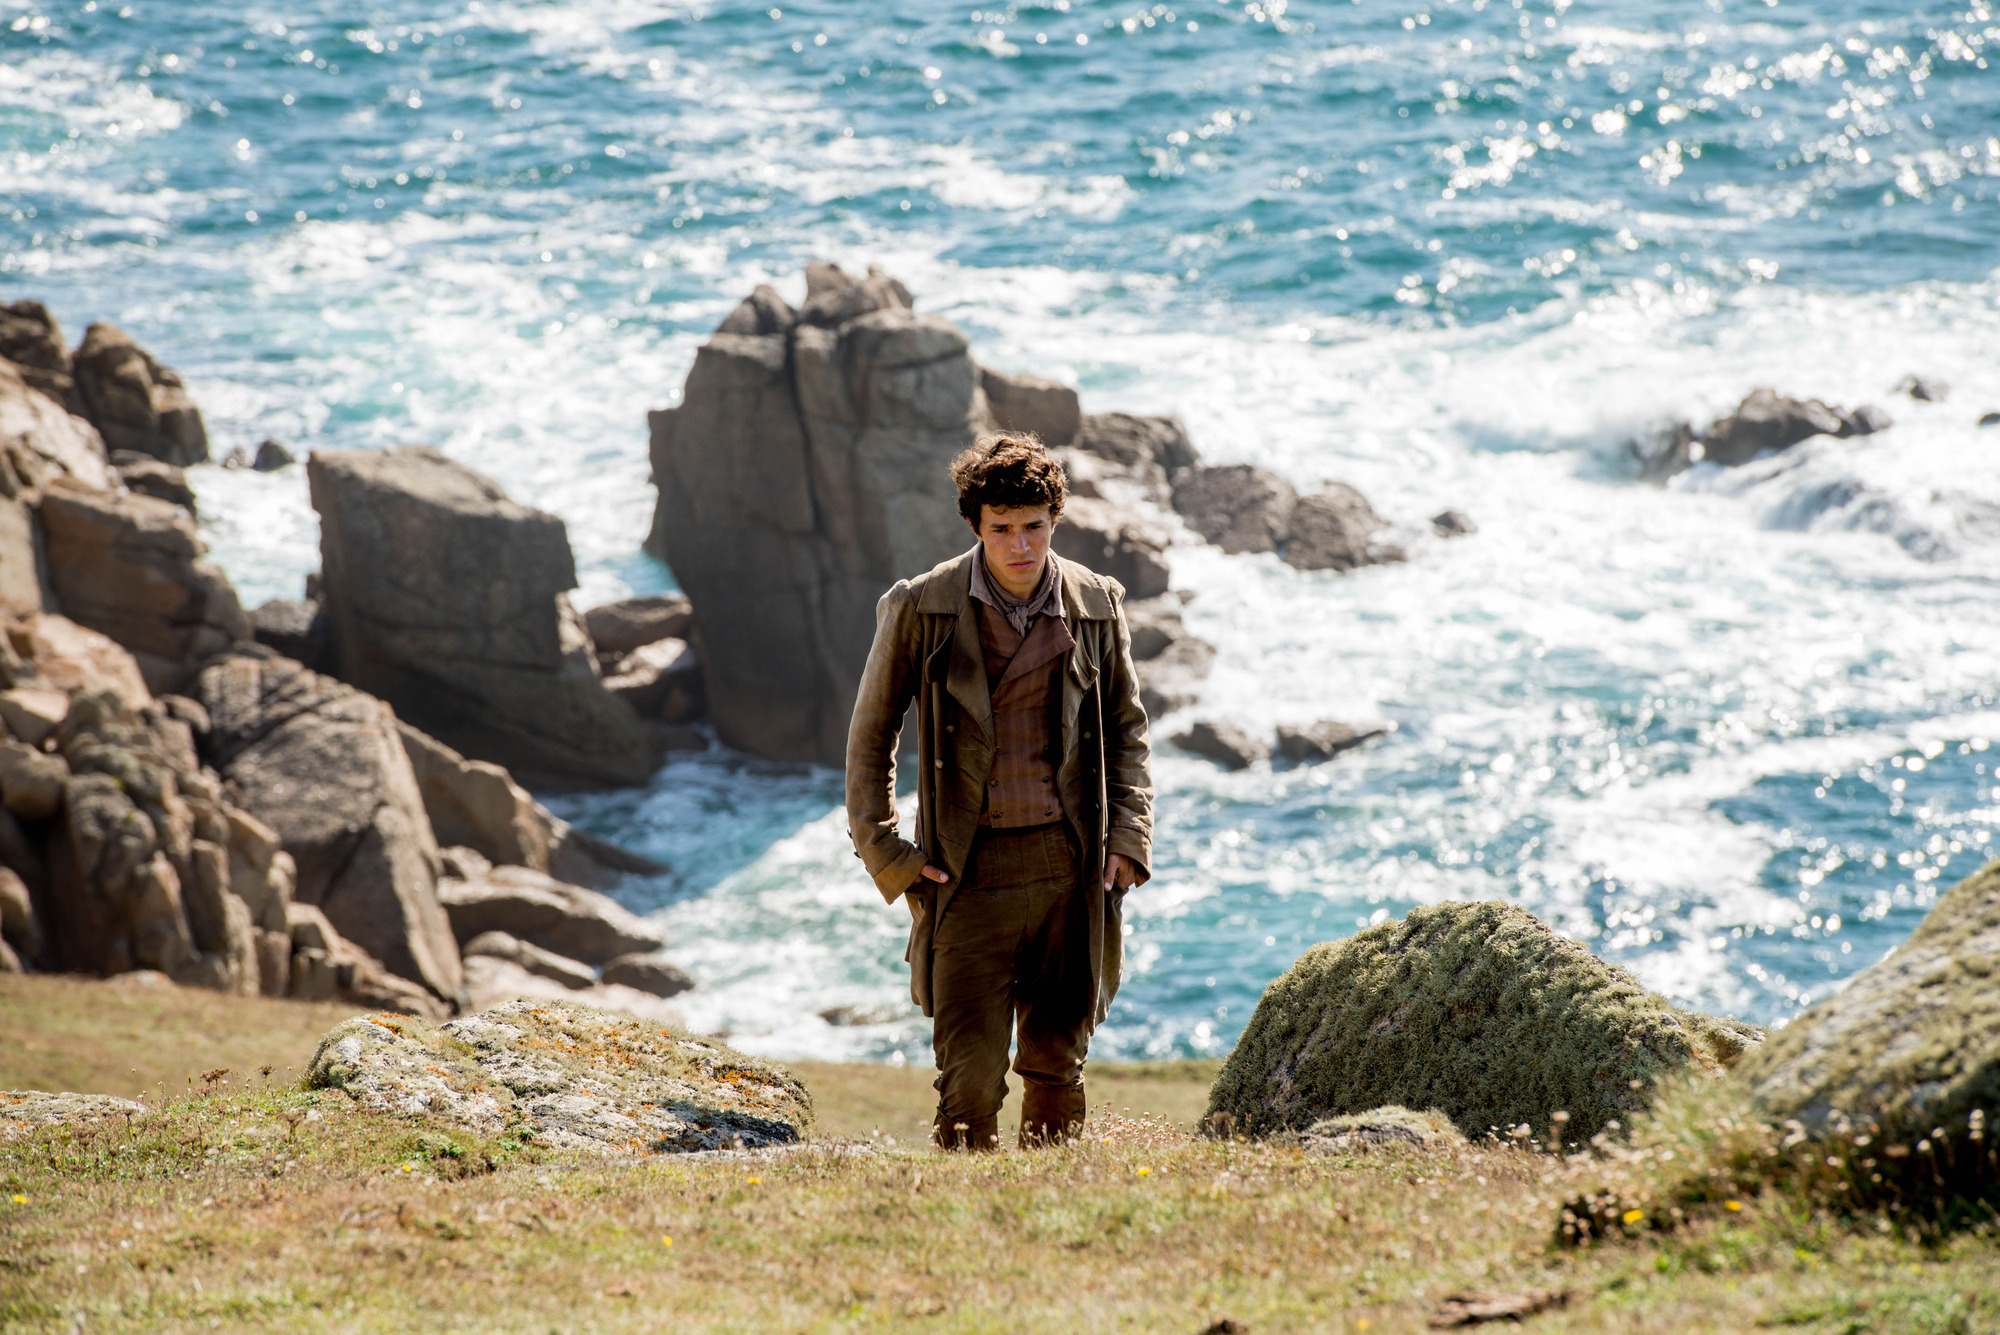 WARNING: Embargoed for publication until 00:00:01 on 06/06/2017 - Programme Name: Poldark S3 - TX: n/a - Episode: Poldark S3 - Episode 1 (No. 1) - Picture Shows: **STRICTLY EMBARGOED UNTIL TUESDAY 6TH JUNE** Drake Carne (HARRY RICHARDSON) - (C) Mammoth Screen - Photographer: Craig Hardie